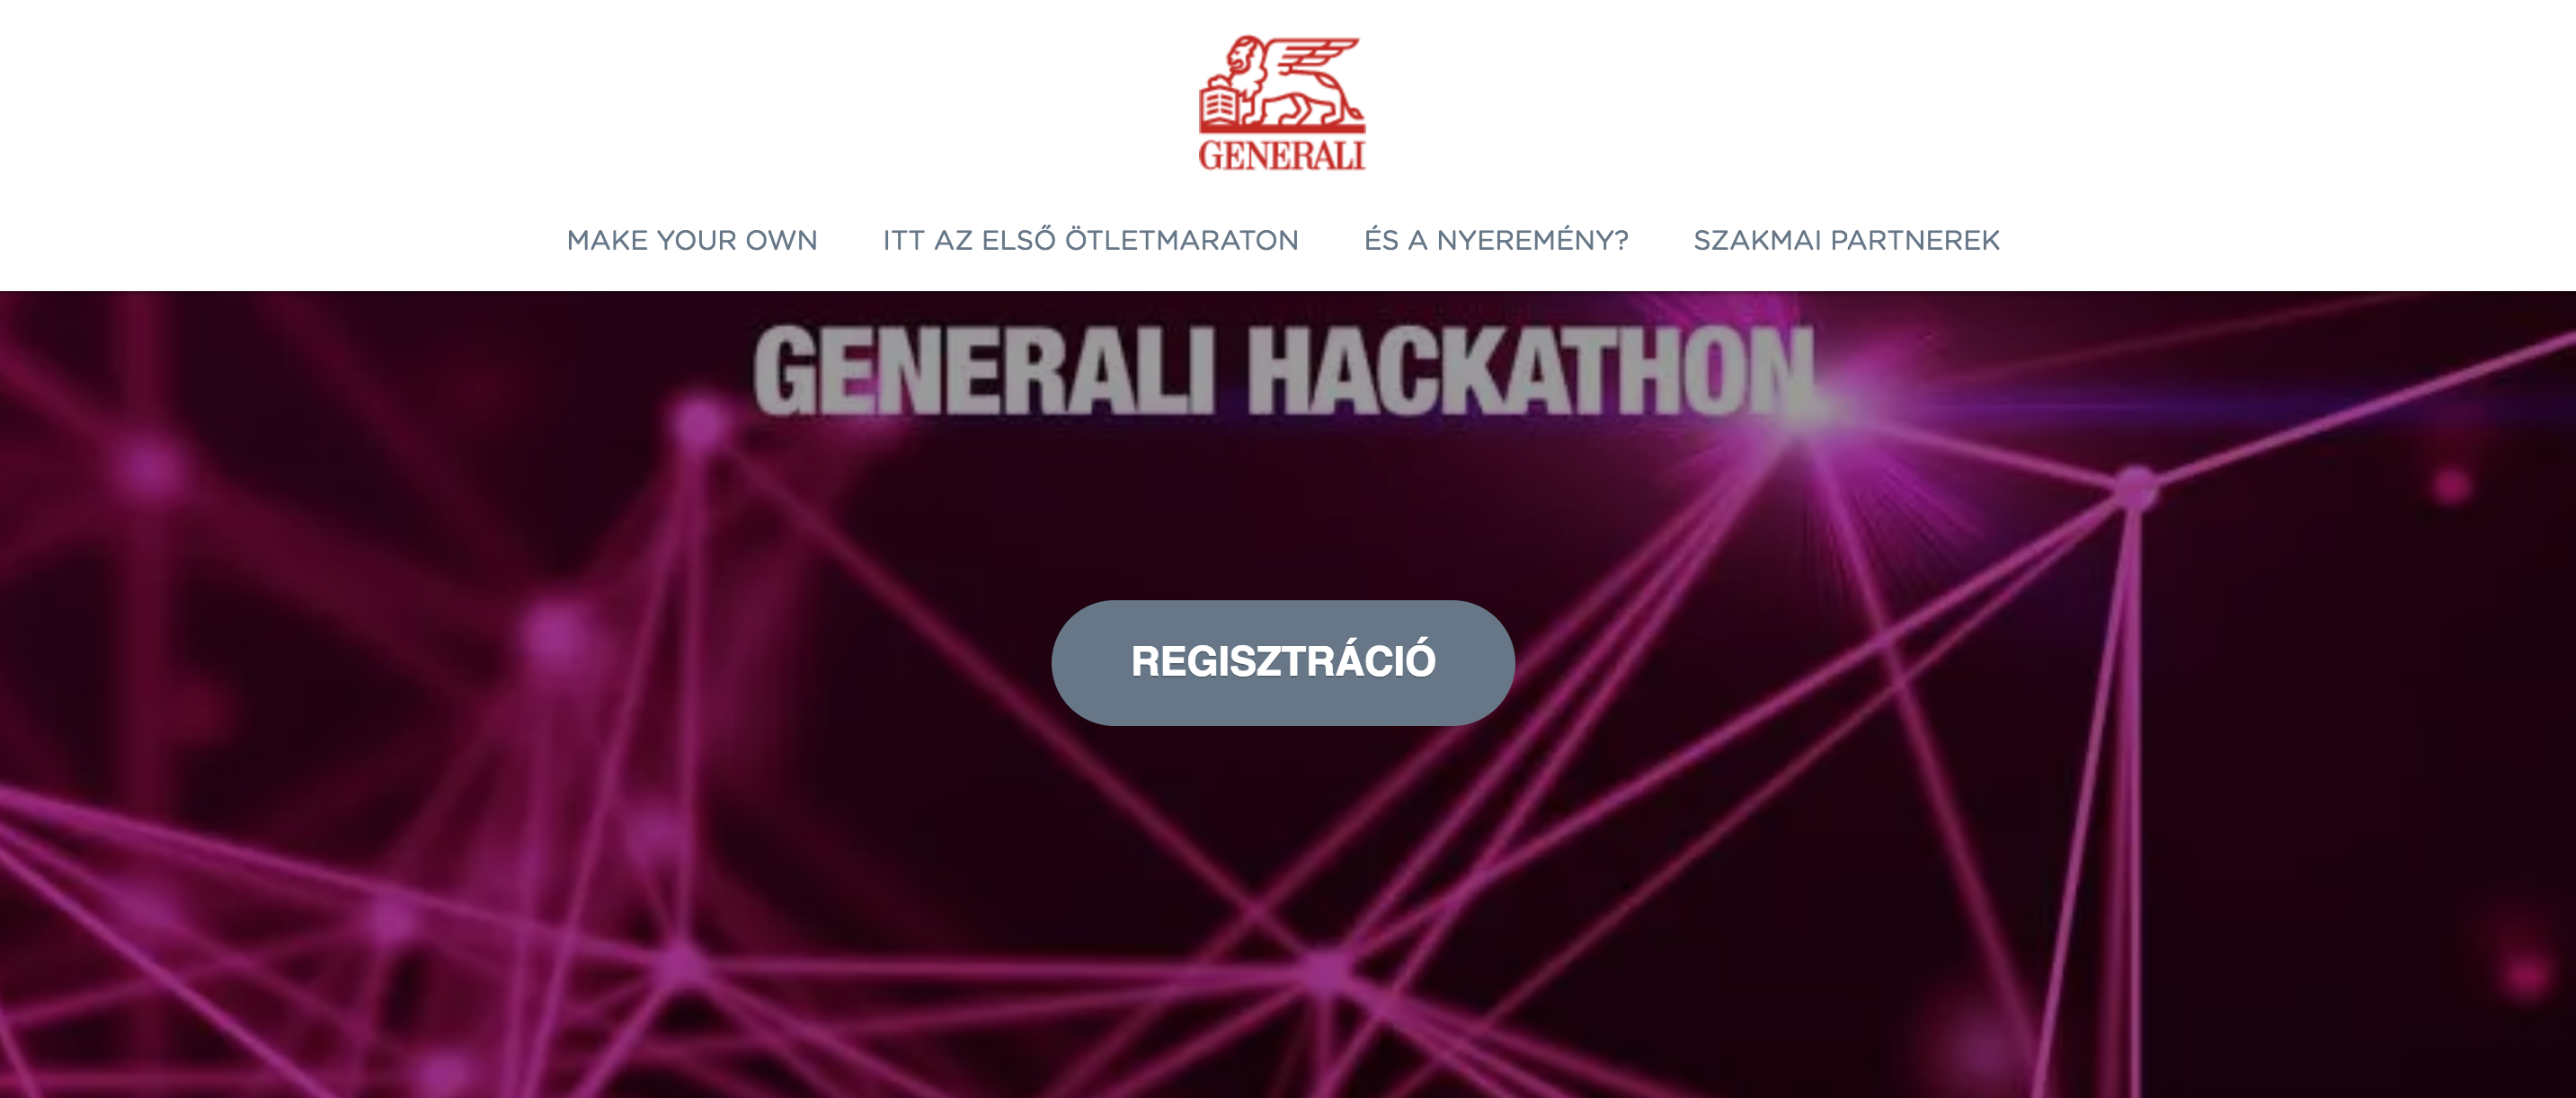 Generali Inside Hackathon Communication design